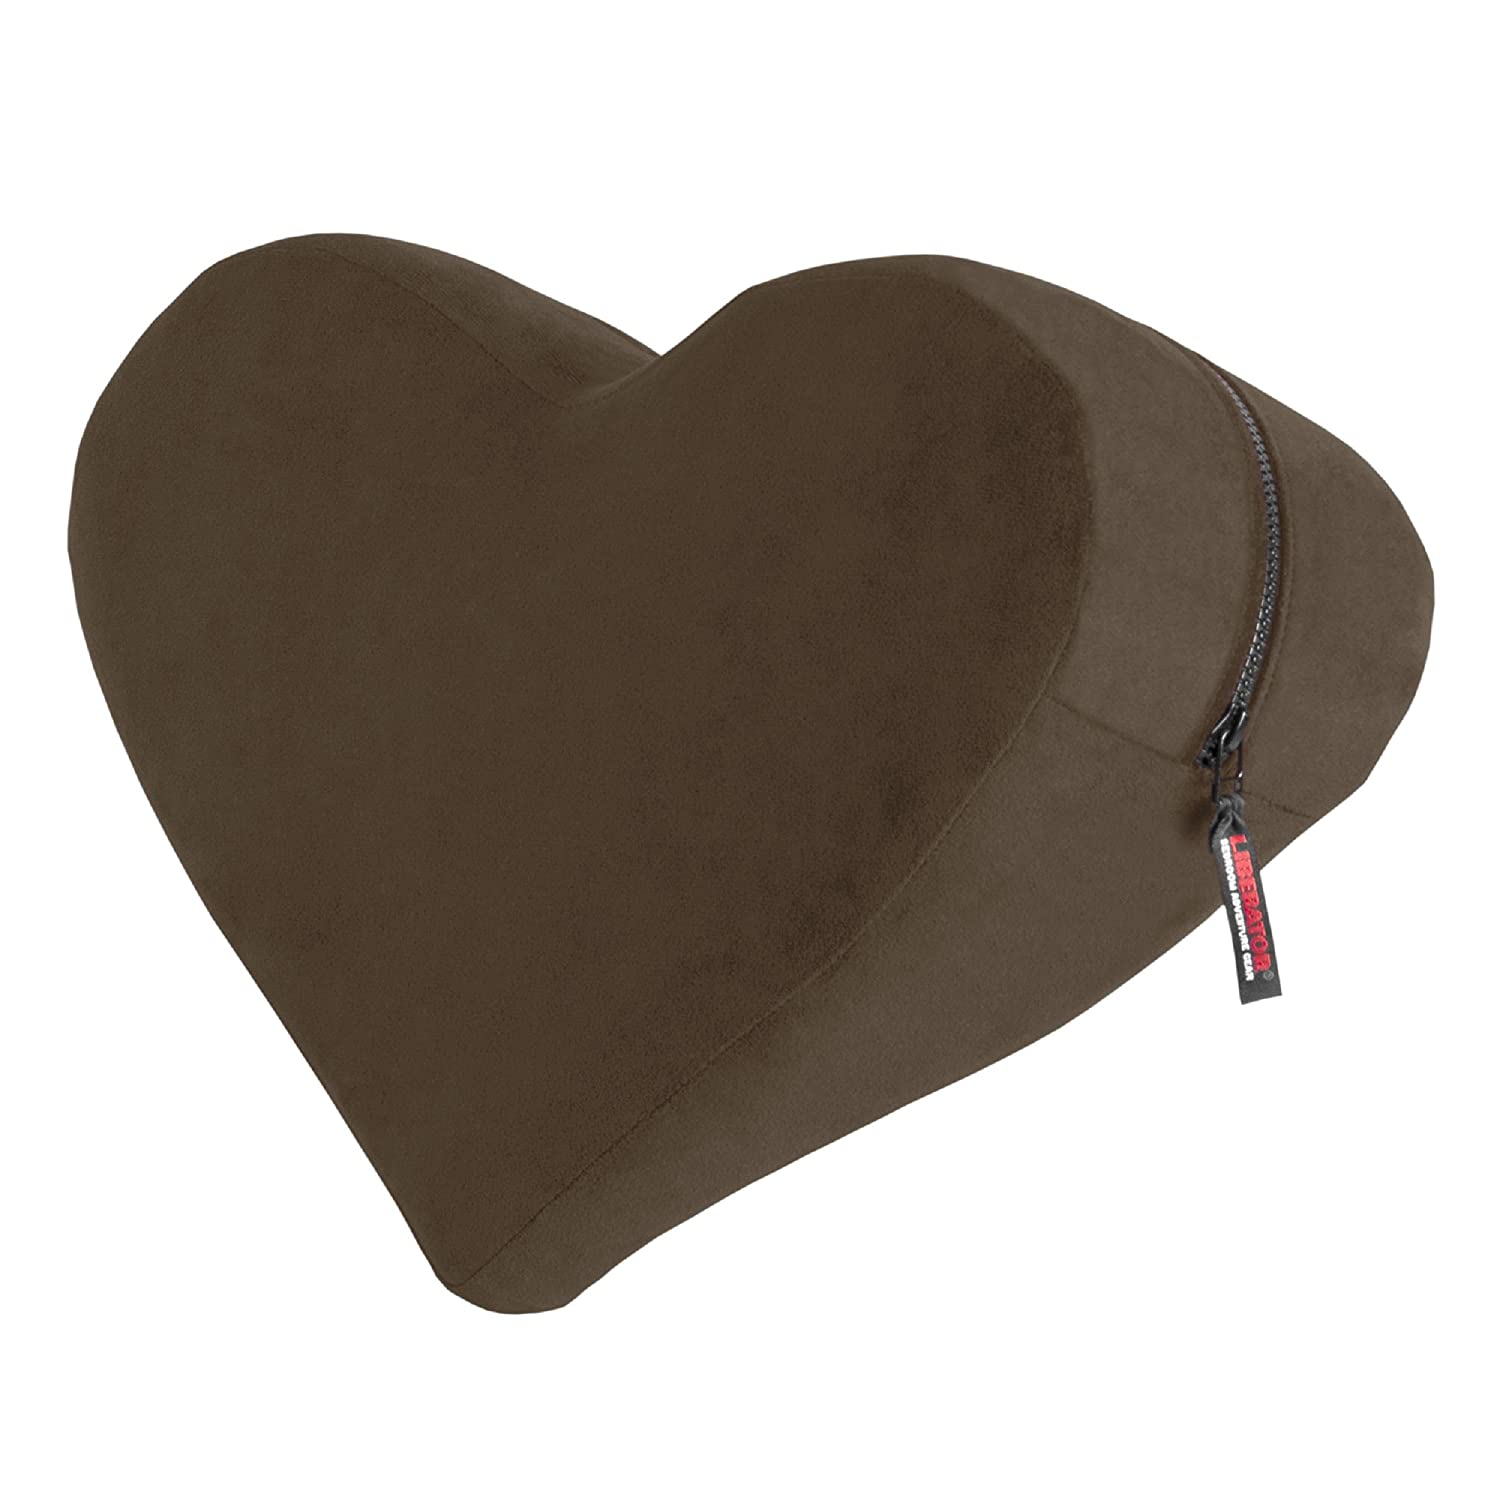 Liberator Decor Heart Wedge Pillow, Espresso Velvish